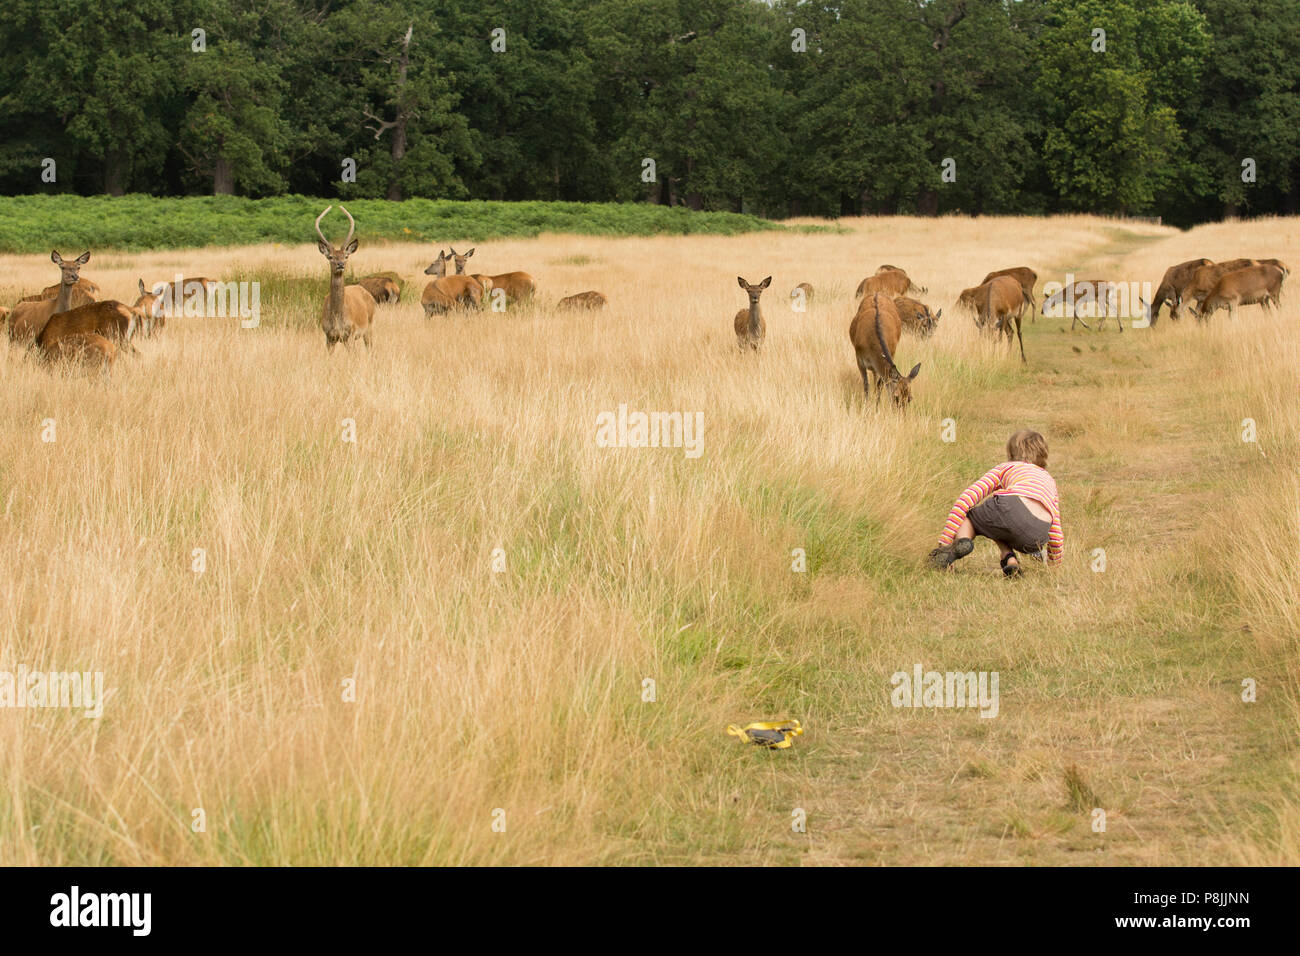 Girl ambushing Red deer in Richmond Park - Stock Image